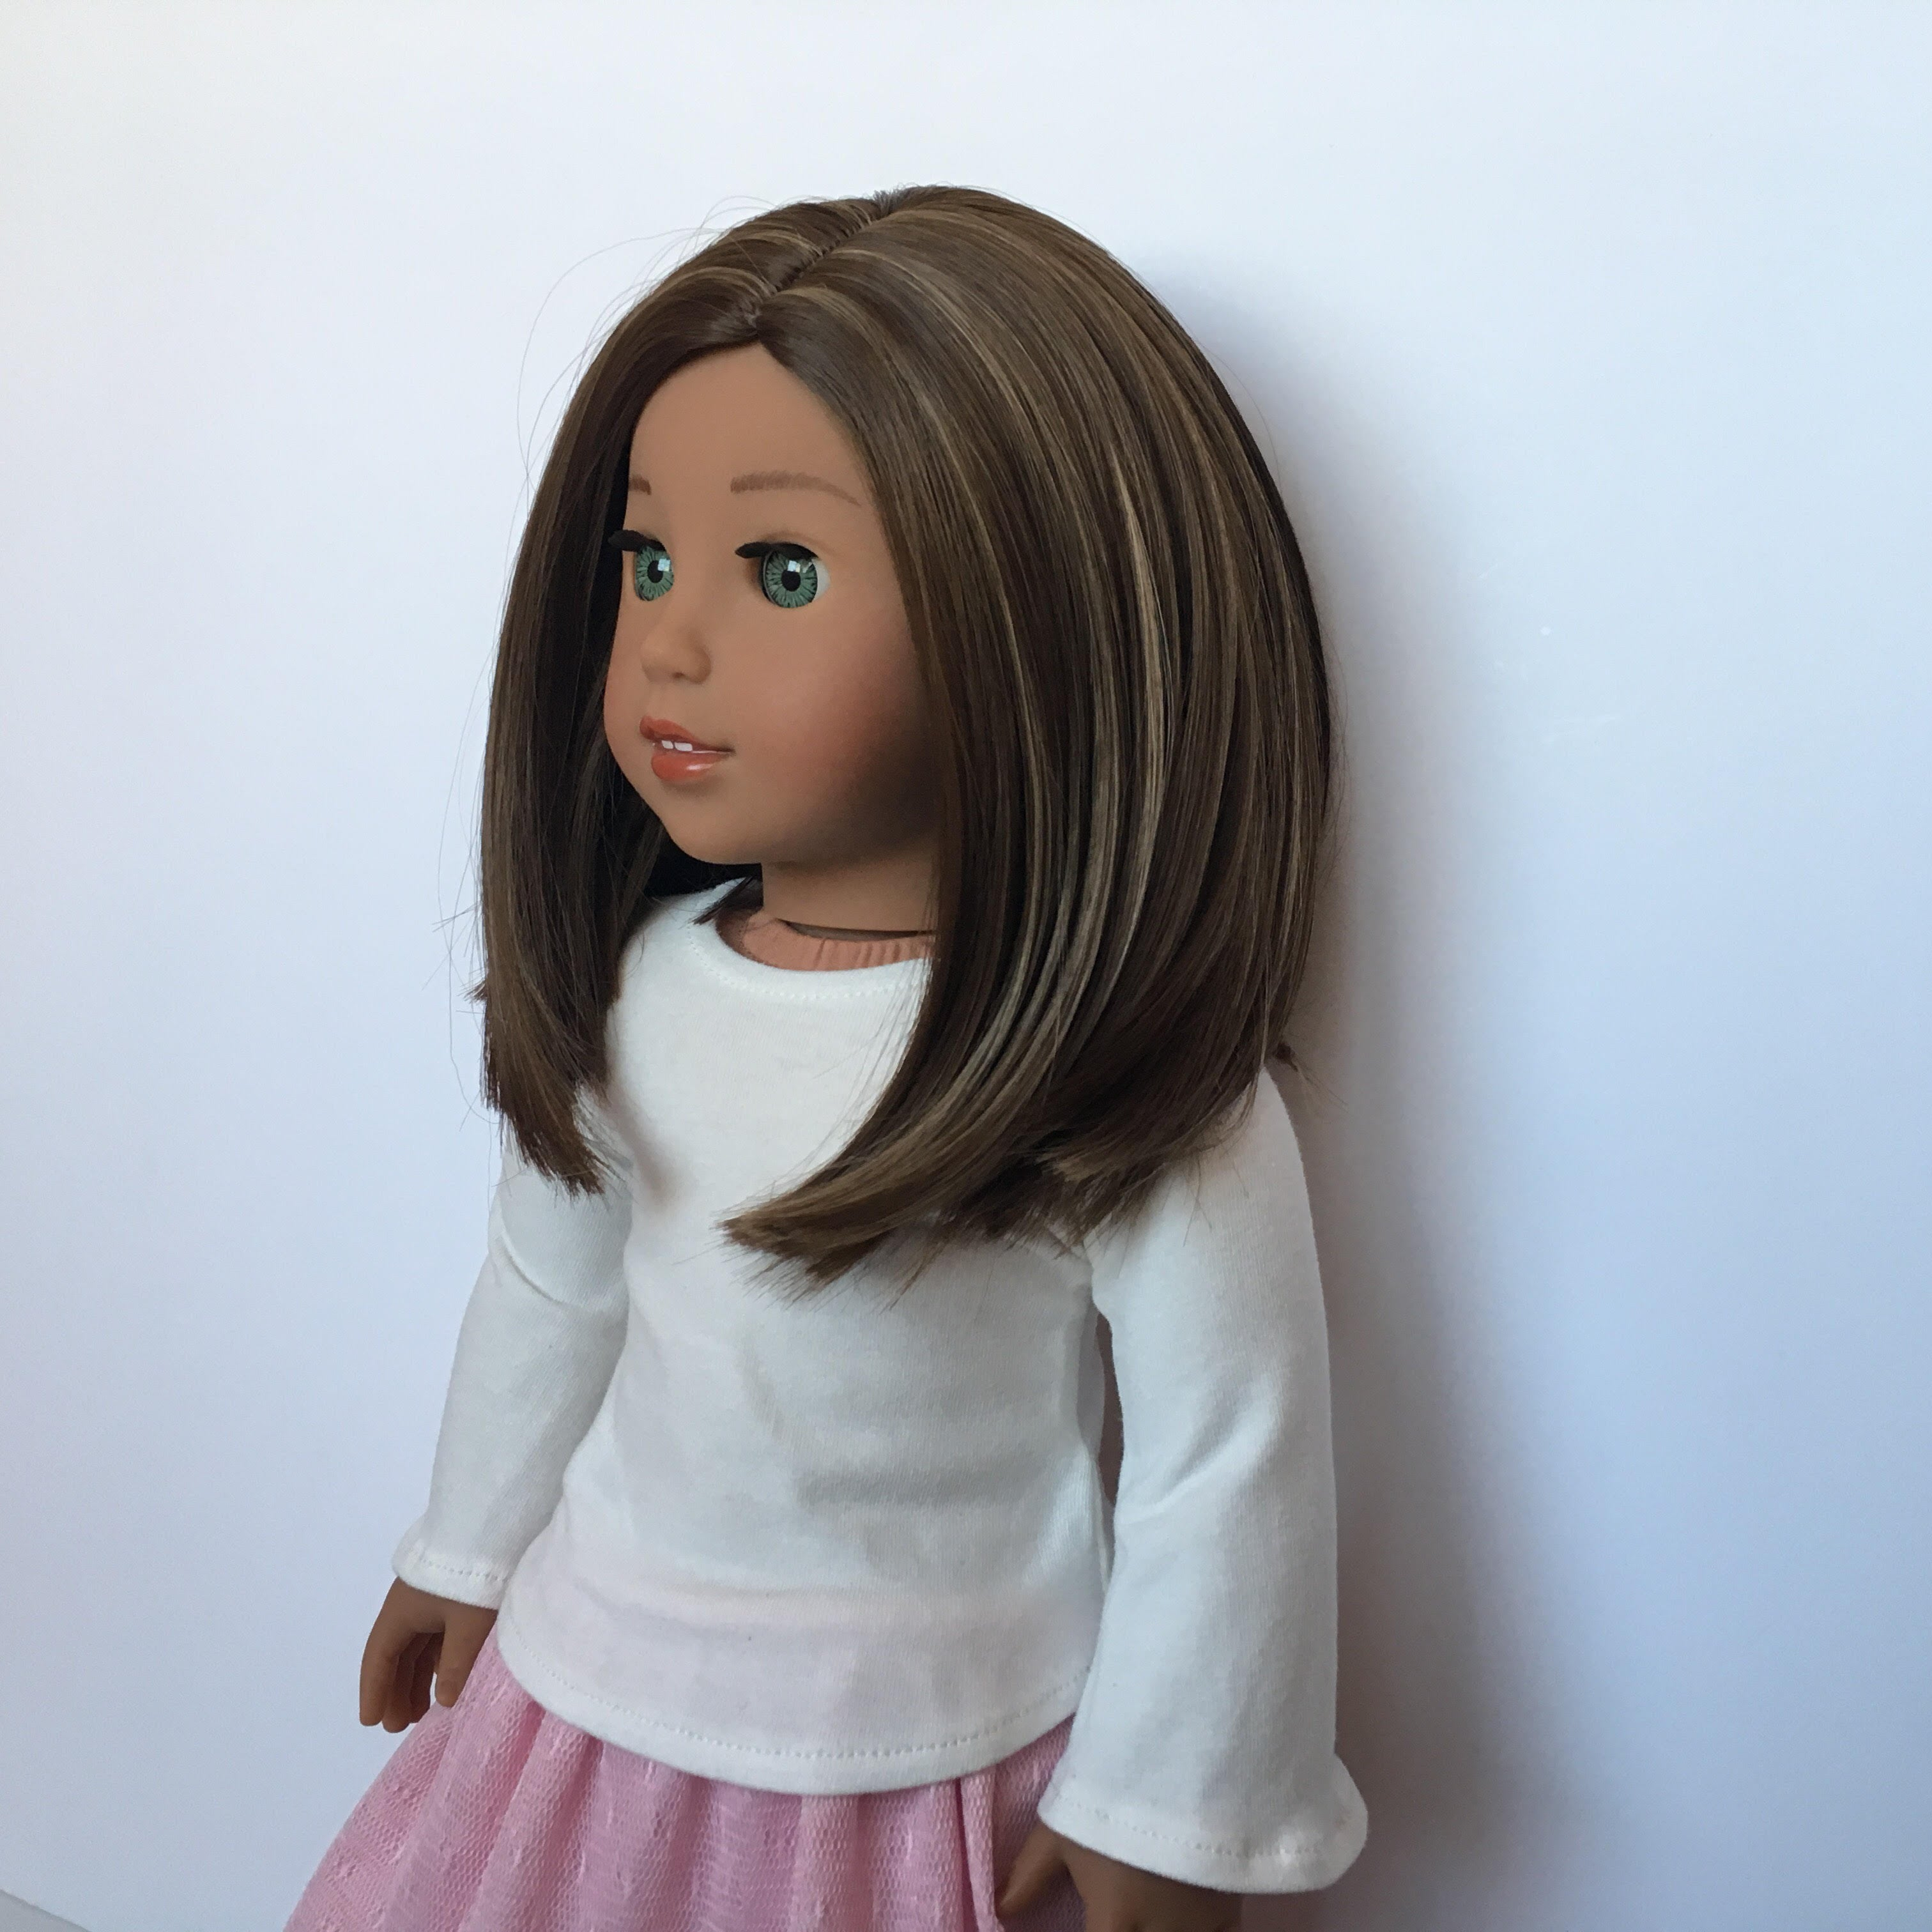 Zazou Dolls Exclusive Lily WIG Brown Cinnamon for 18 Inch dolls such as Journey and American Girl